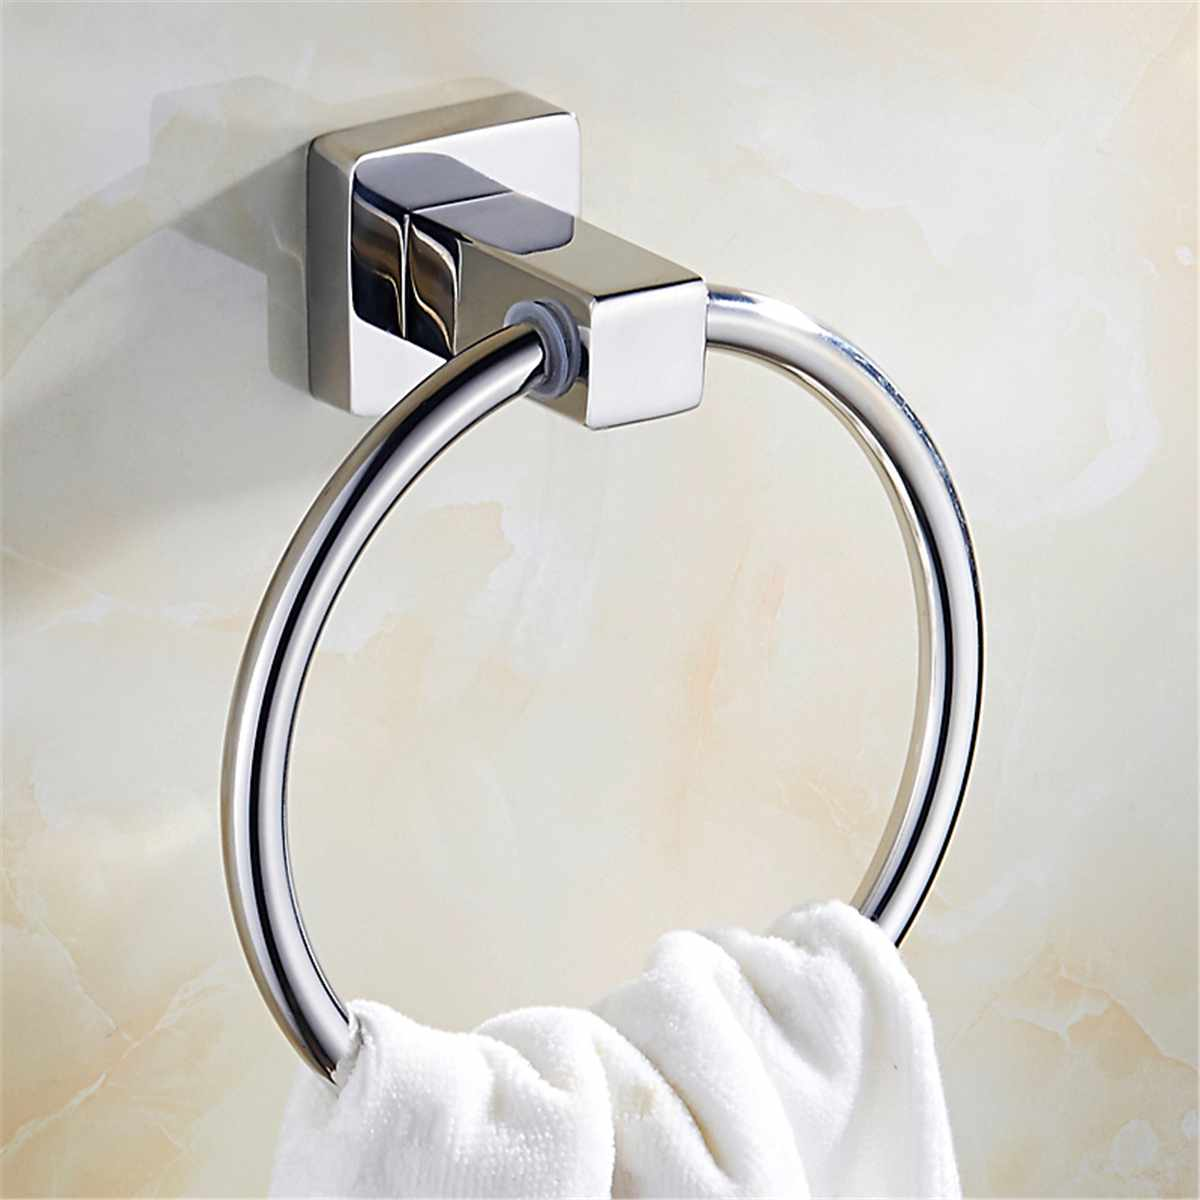 Wall-Mounted Towel Ring Round Hanger Towel Holder Rack Stainless steel Hanging Towel Bar Bathroom Accessories Hardware Fixture